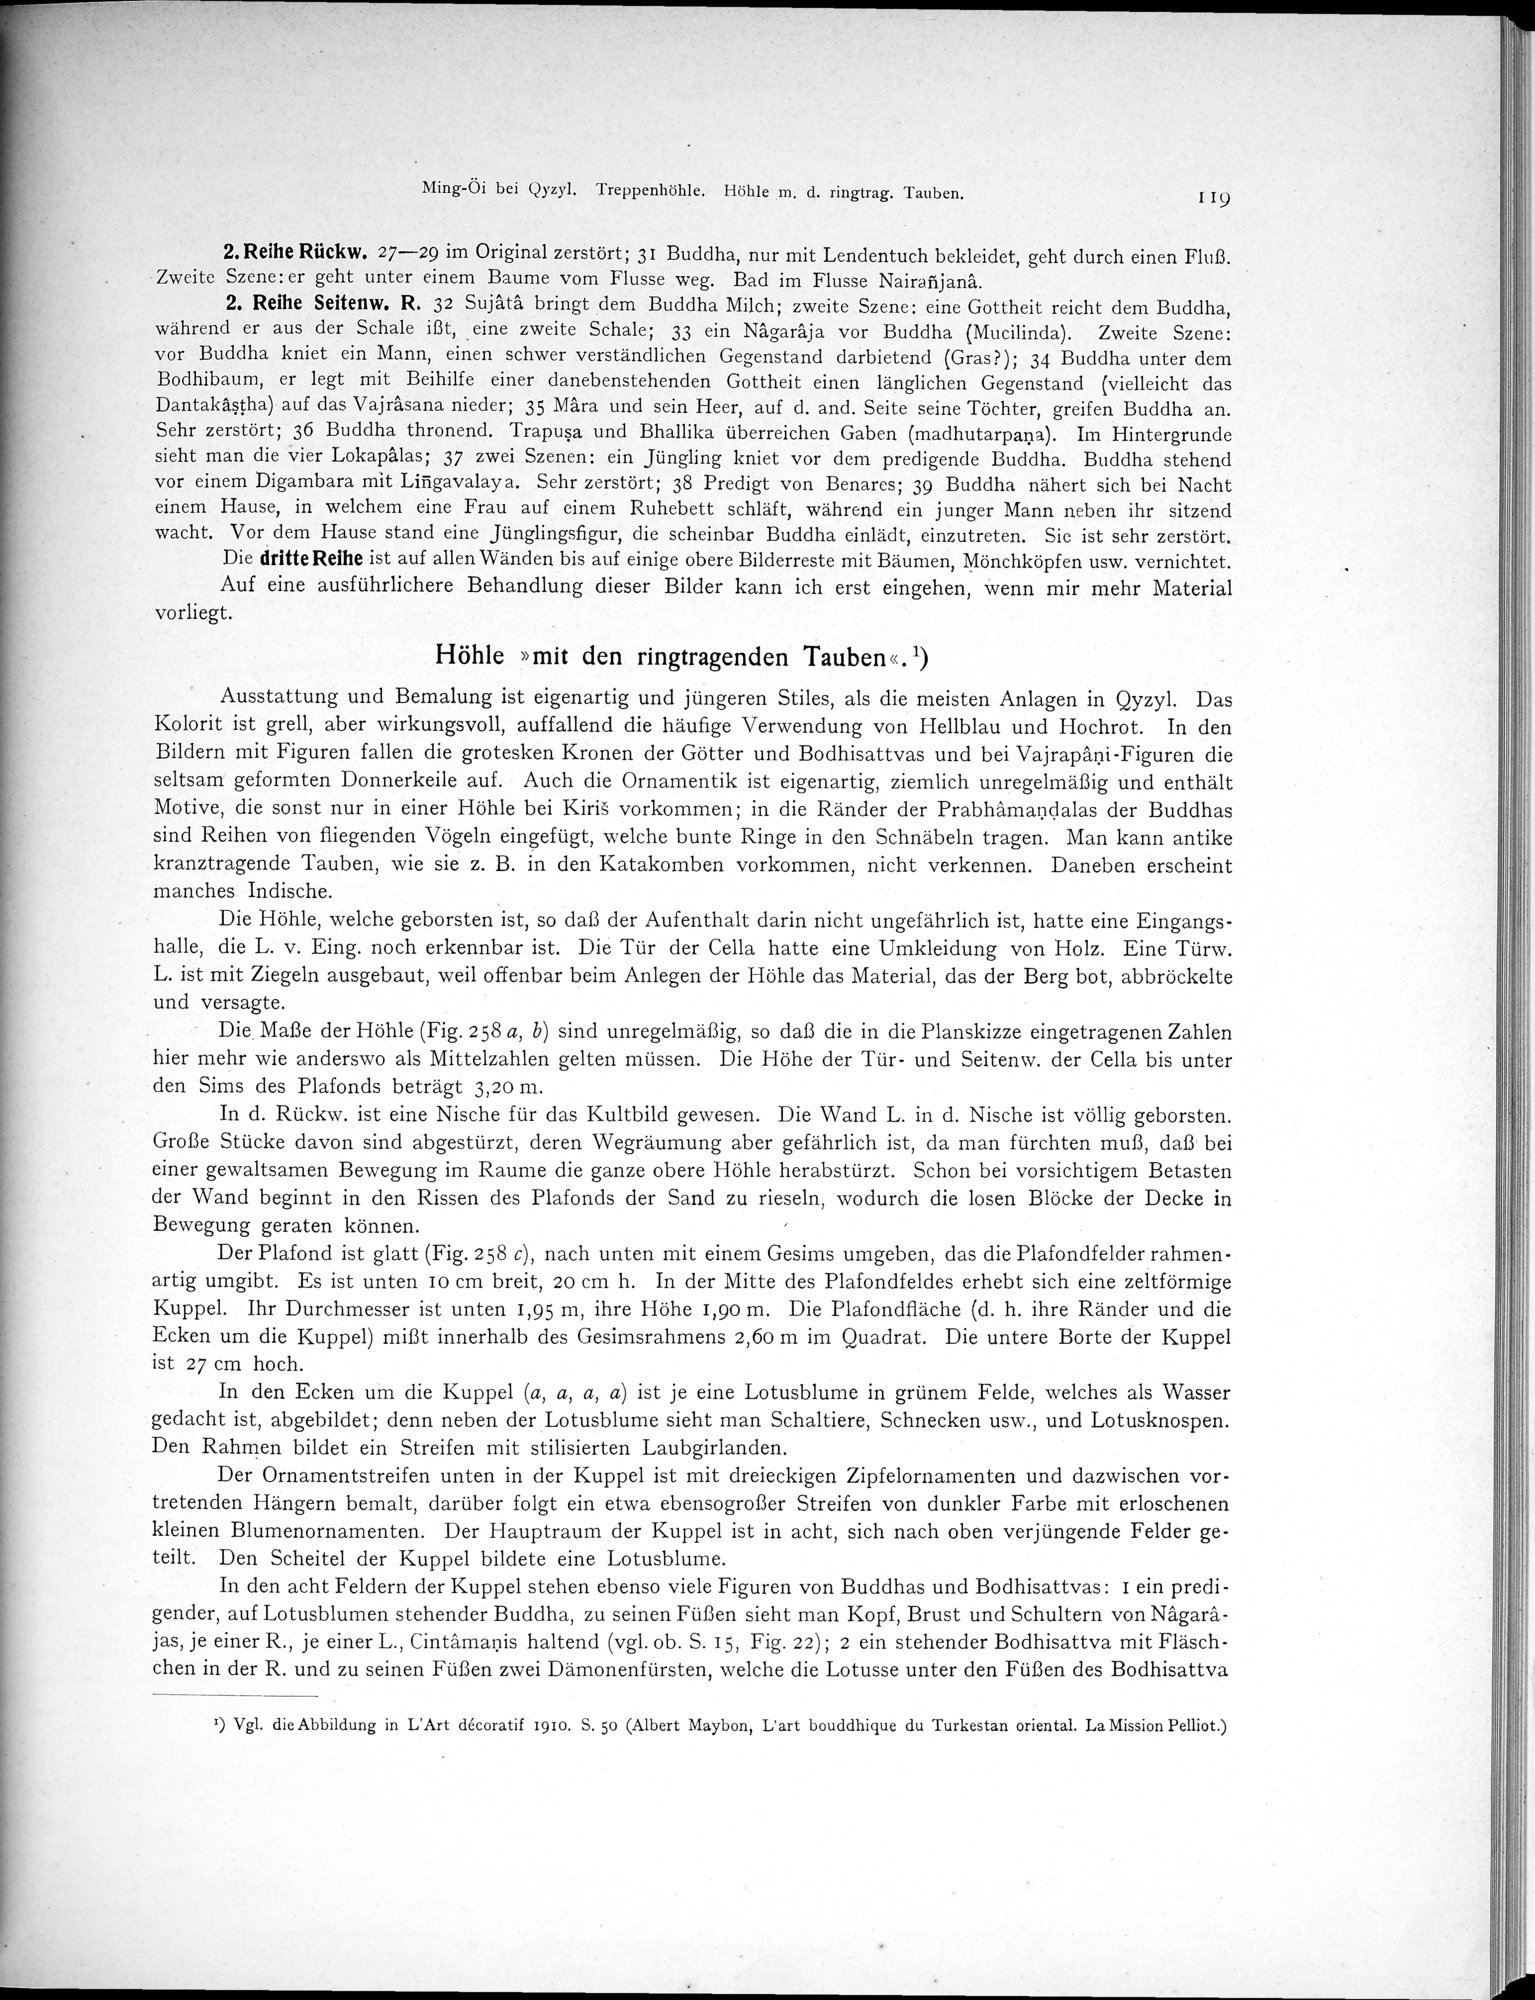 Altbuddhistische Kultstätten in Chinesisch-Turkistan : vol.1 / Page 125 (Grayscale High Resolution Image)